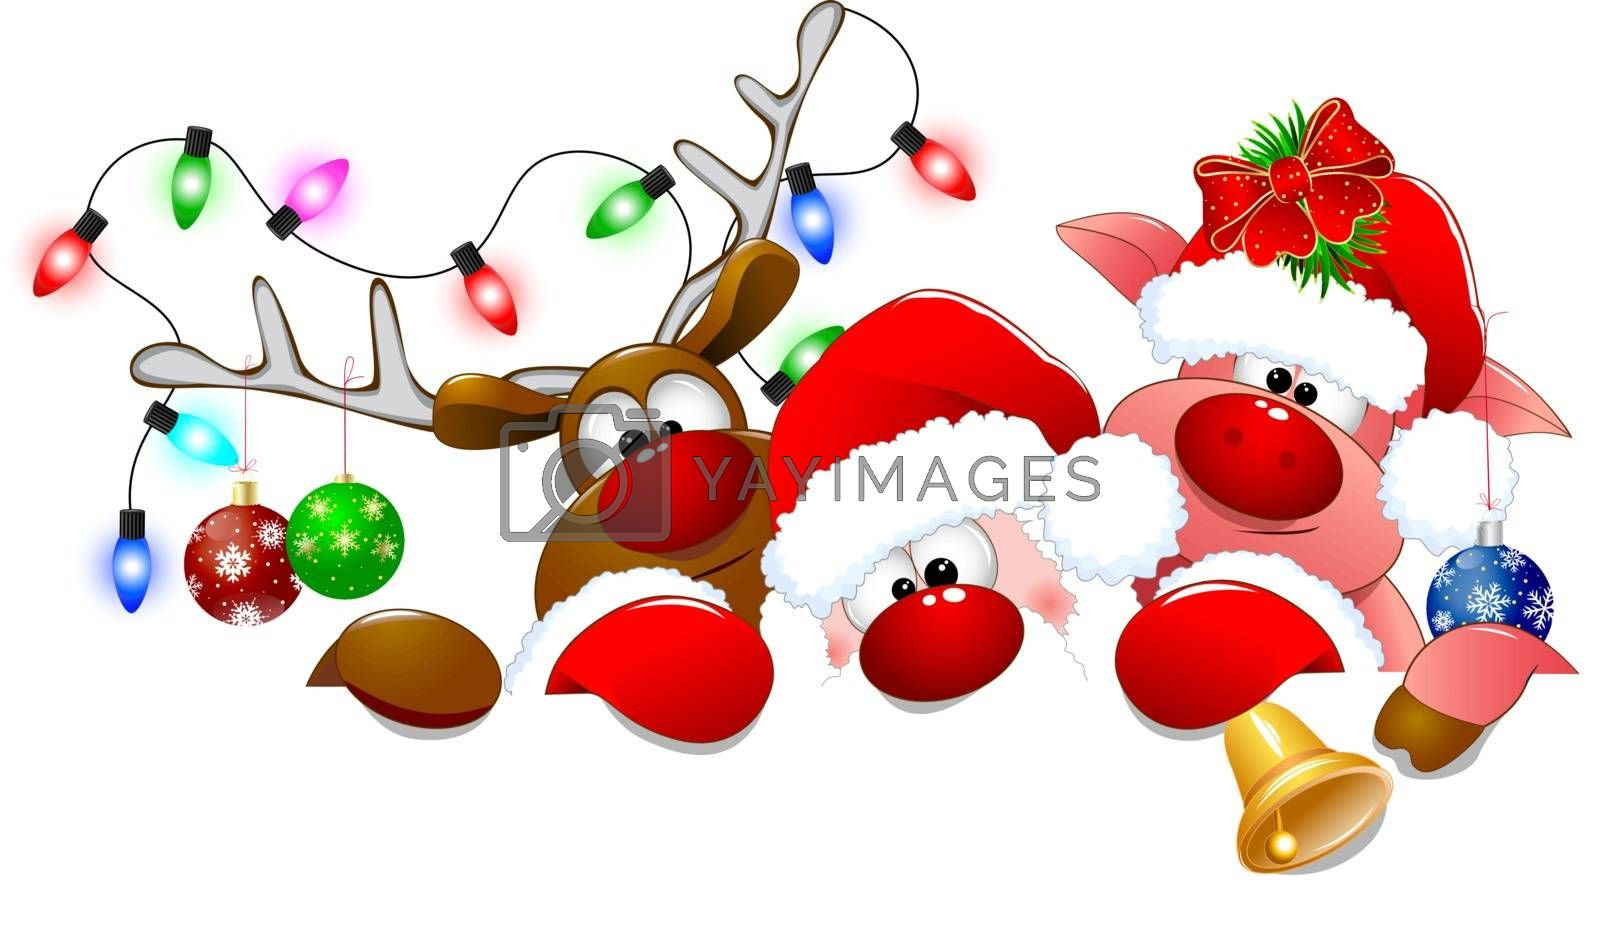 Santa Claus, deer and piglet with Christmas decorations on a white background.